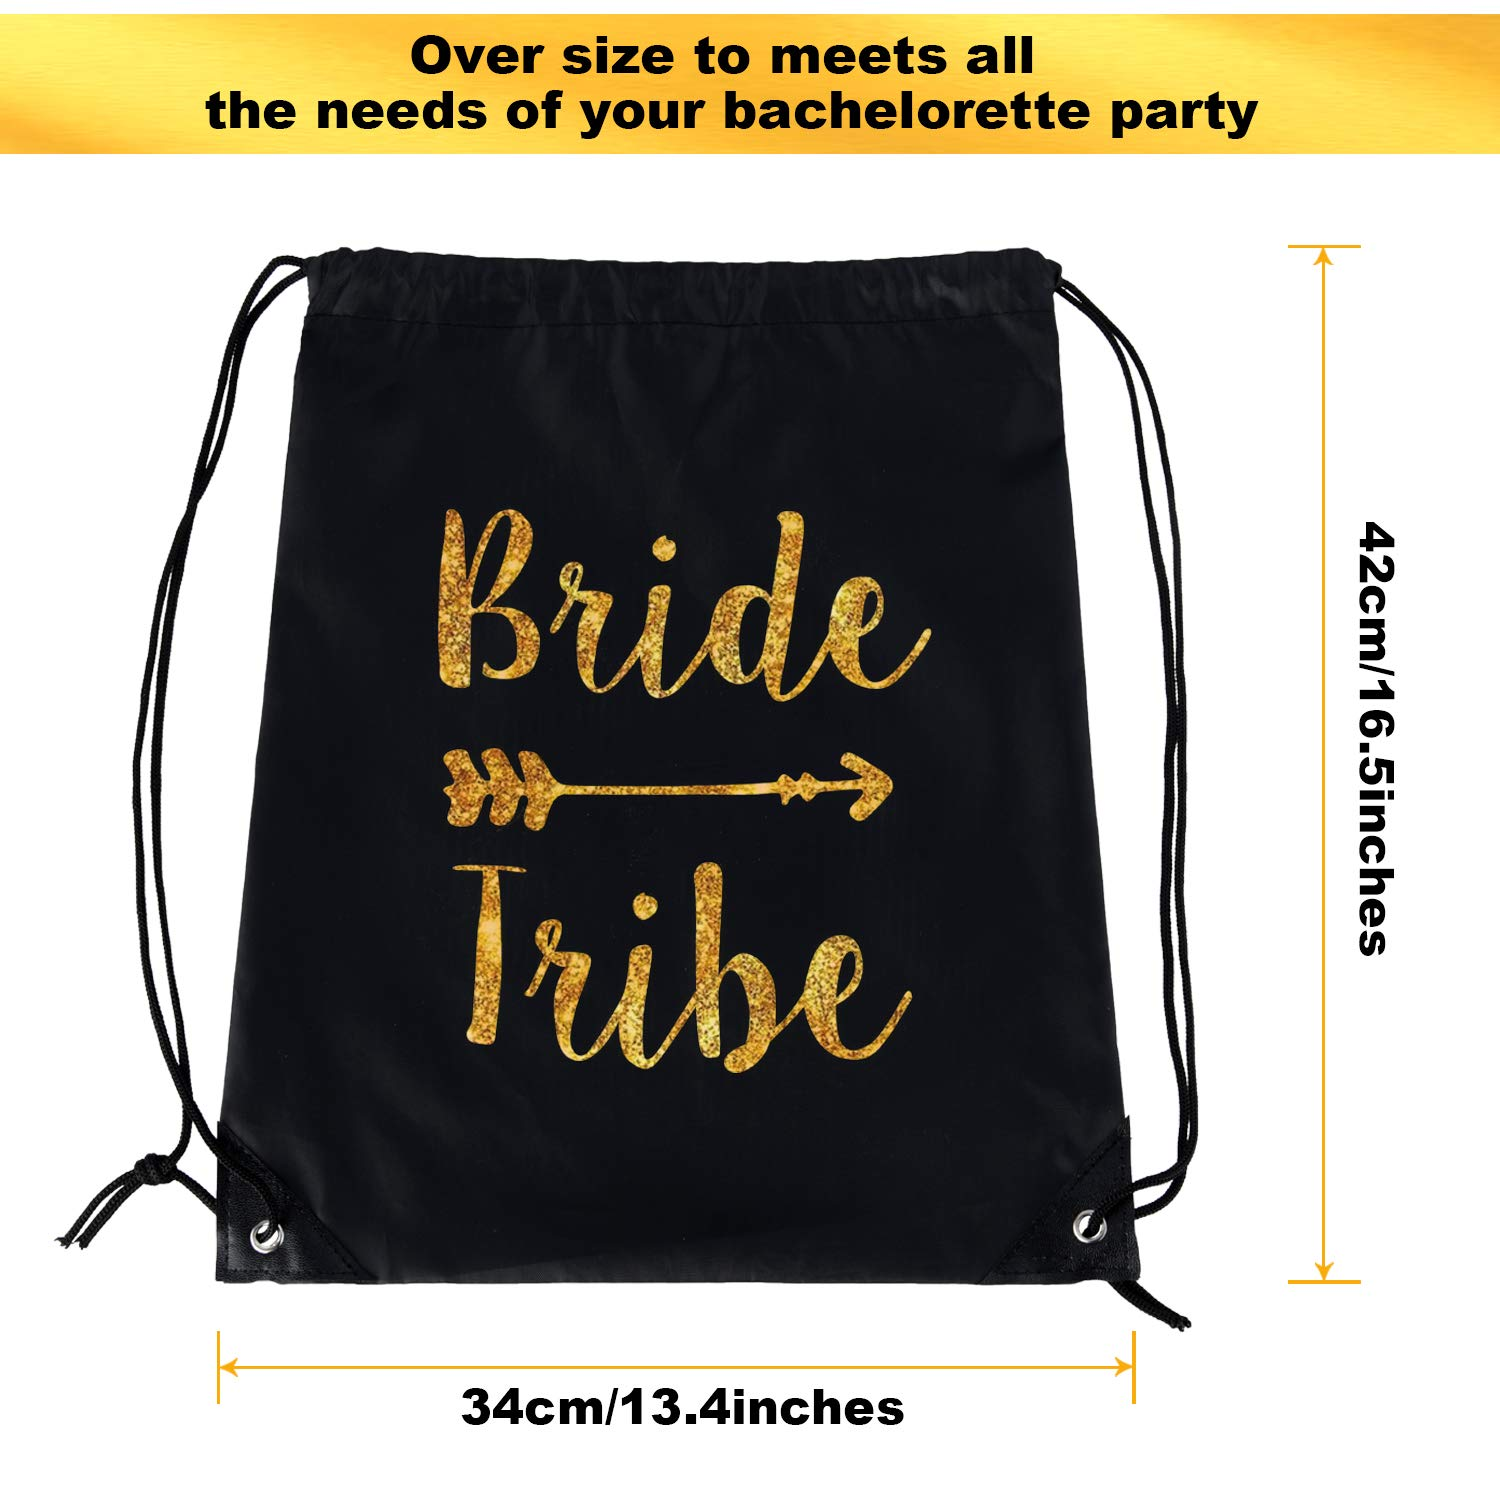 12 Pieces Bride and Bride Tribe Drawstring Bags Wedding Drawstring Gift Bag Bridal Party Favor Bags for Bridesmaids Bridal Party Bridal Shower, 16.5 x 13.4 inch (Black) by Maitys (Image #2)